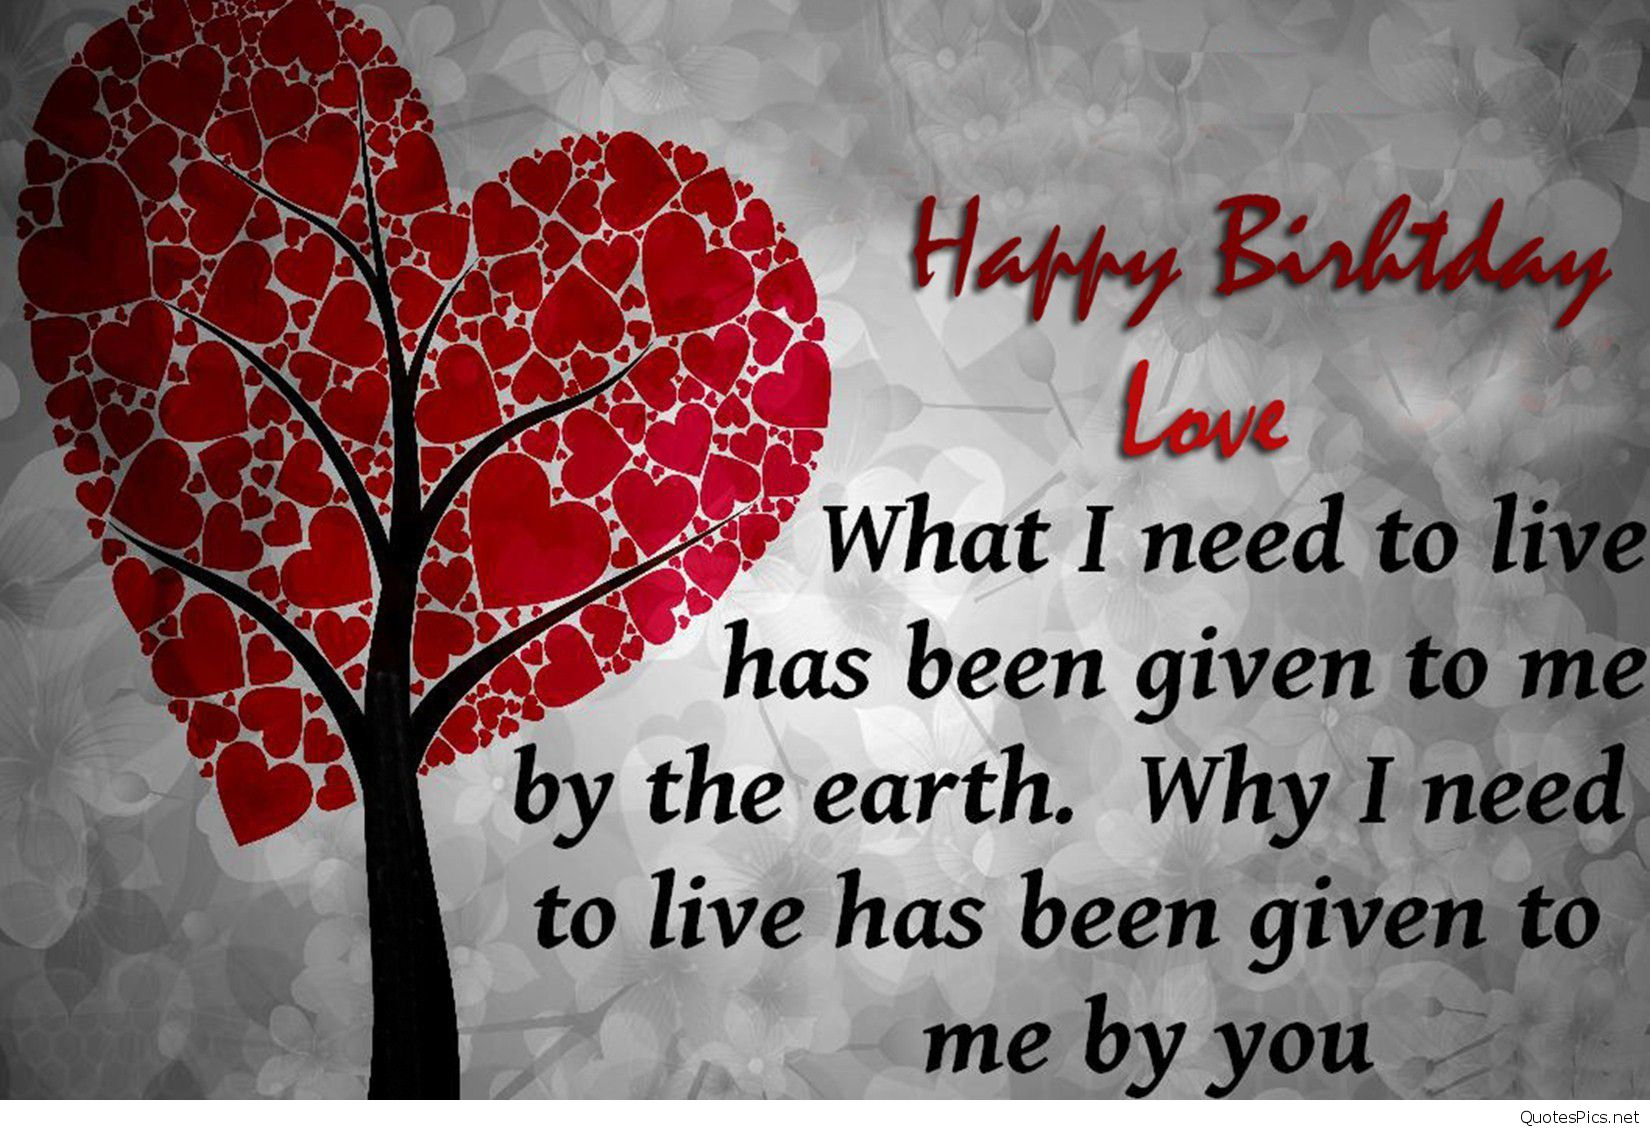 birthday wishes wallpaper for lover ; happy-birthday-my-love-quotes-hd-wallpapers